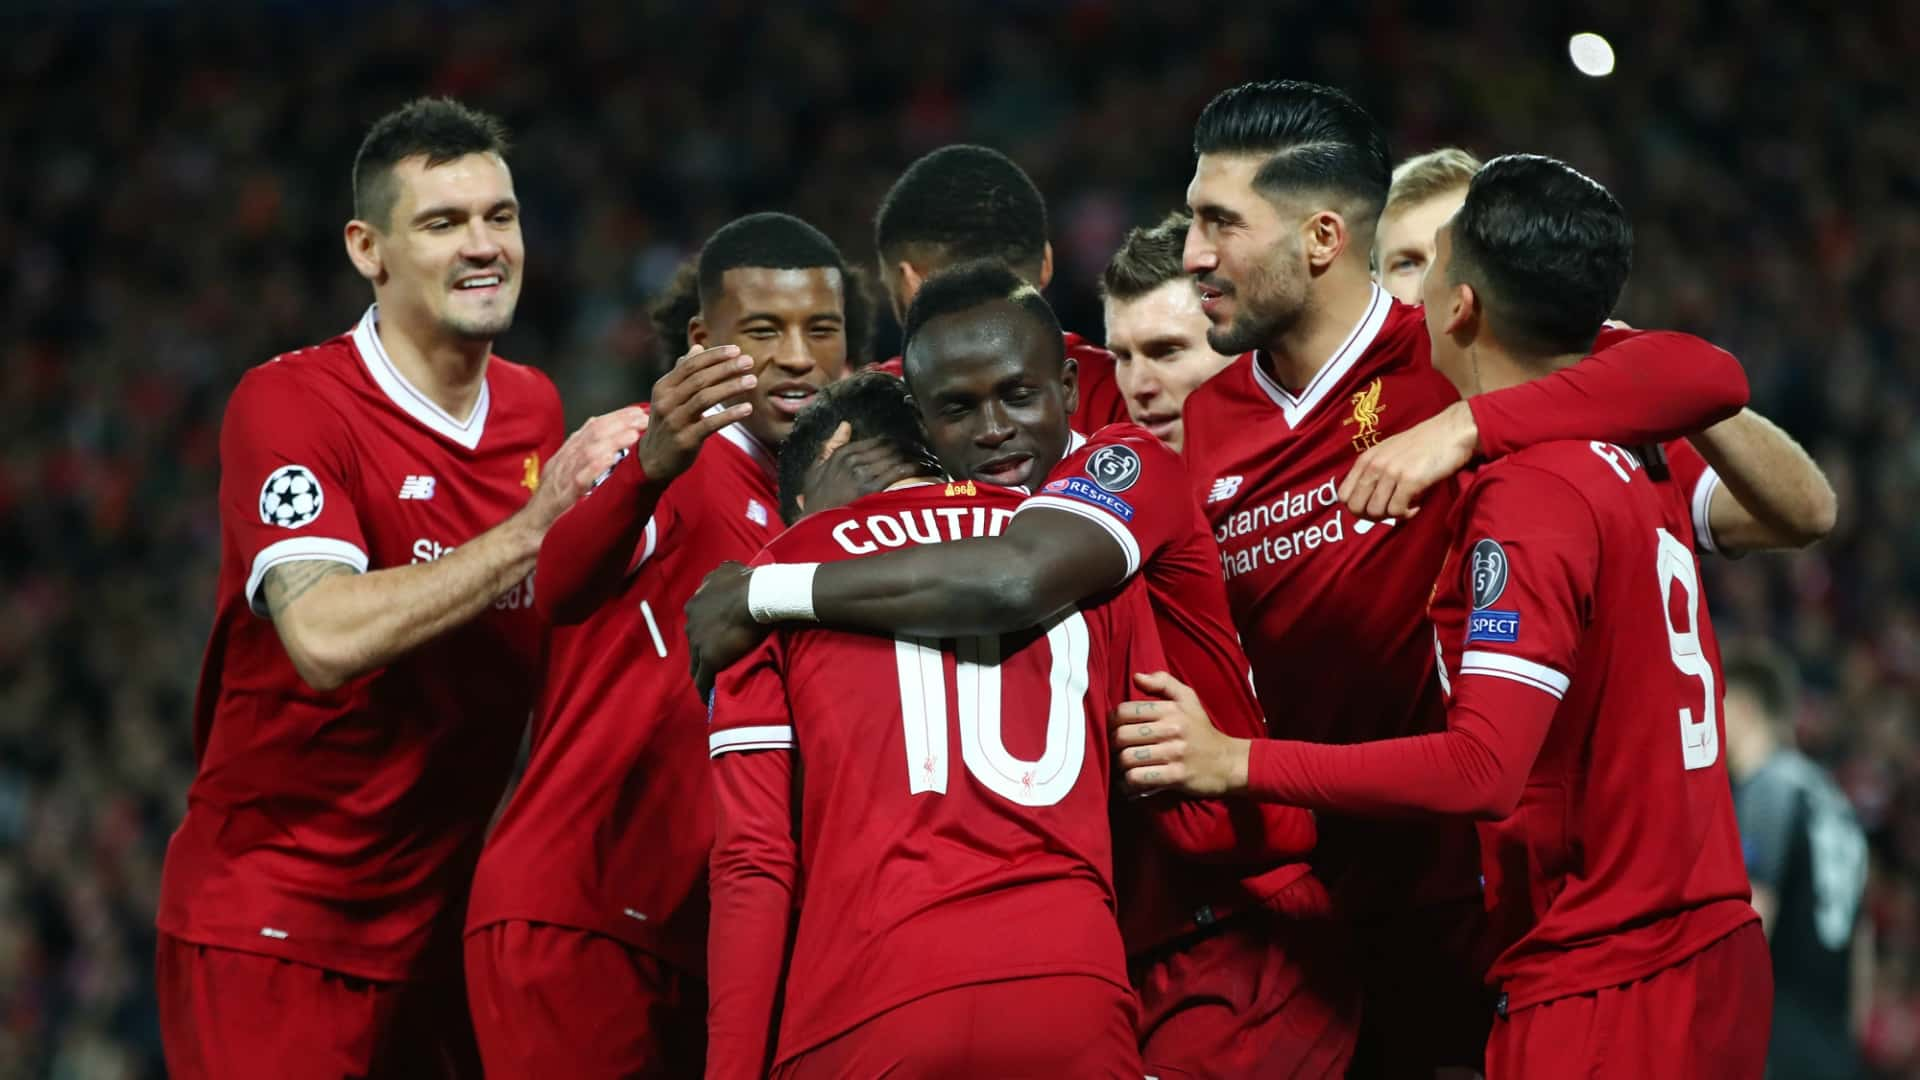 Liverpool celebrate vicotry over Spartak